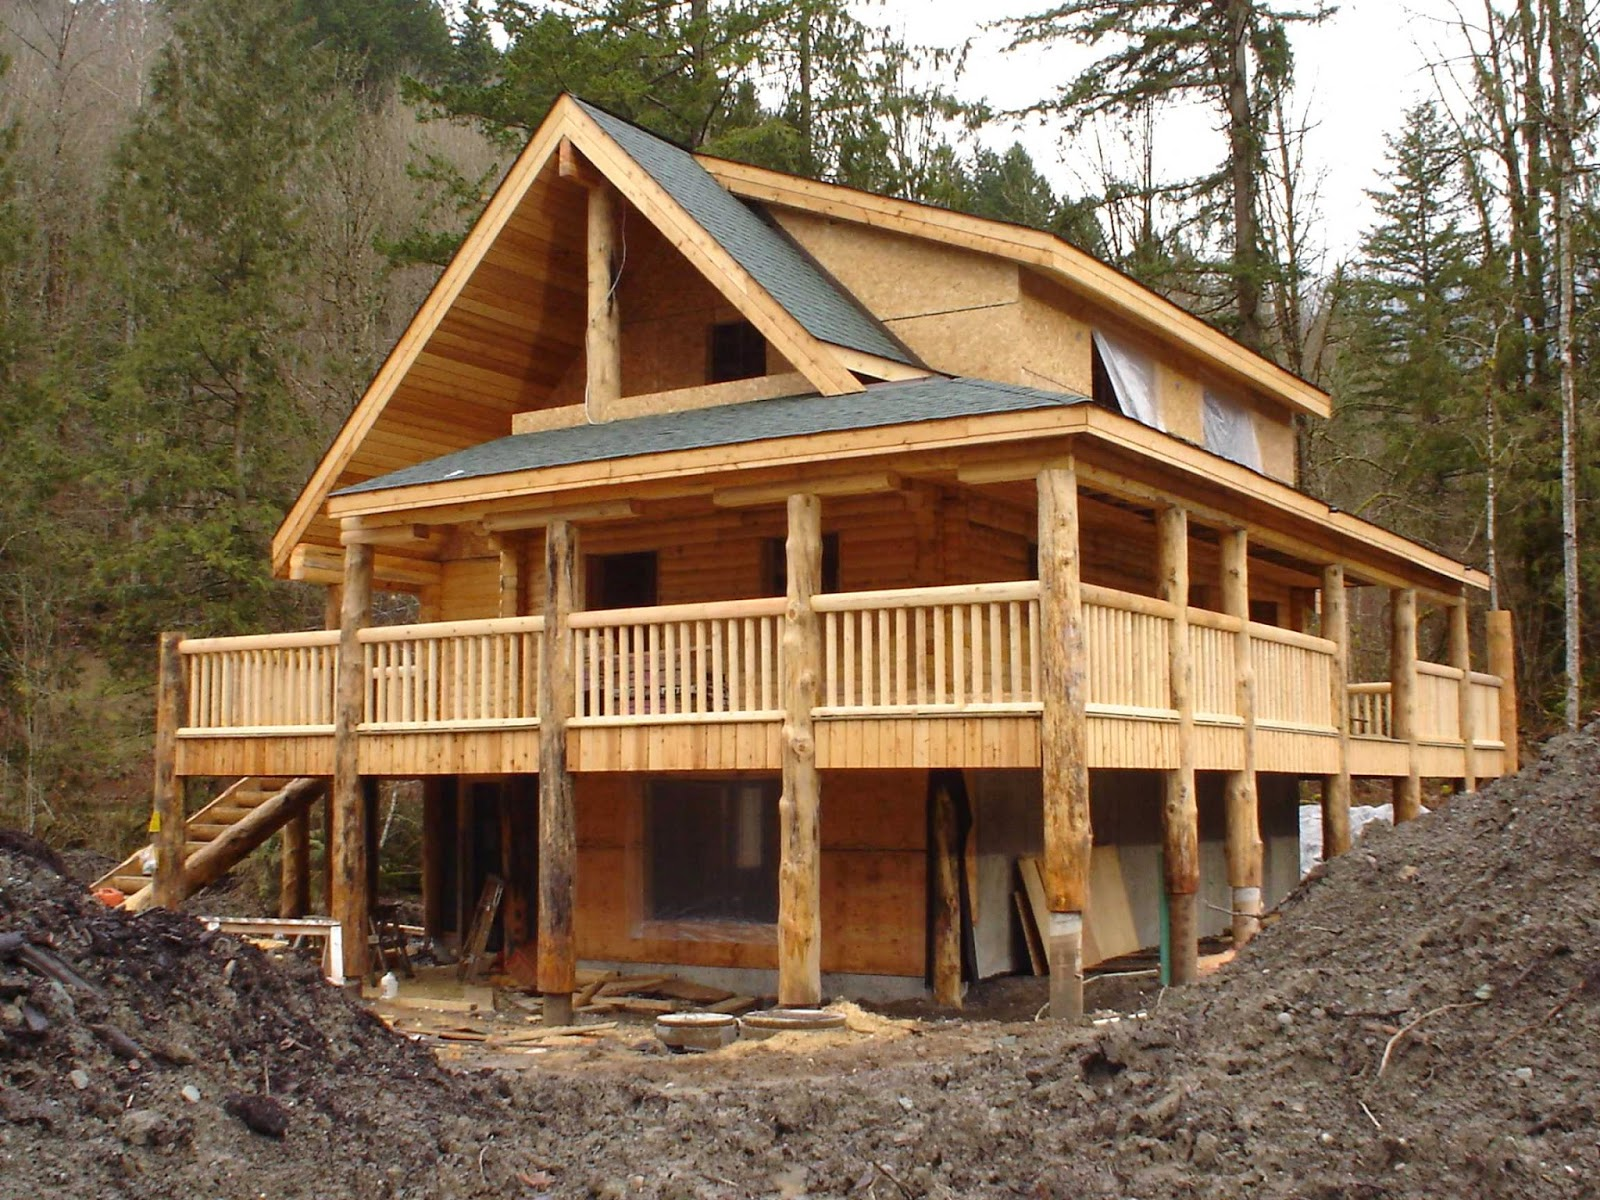 Wood mizer llc building a successful business with a for Unique log homes